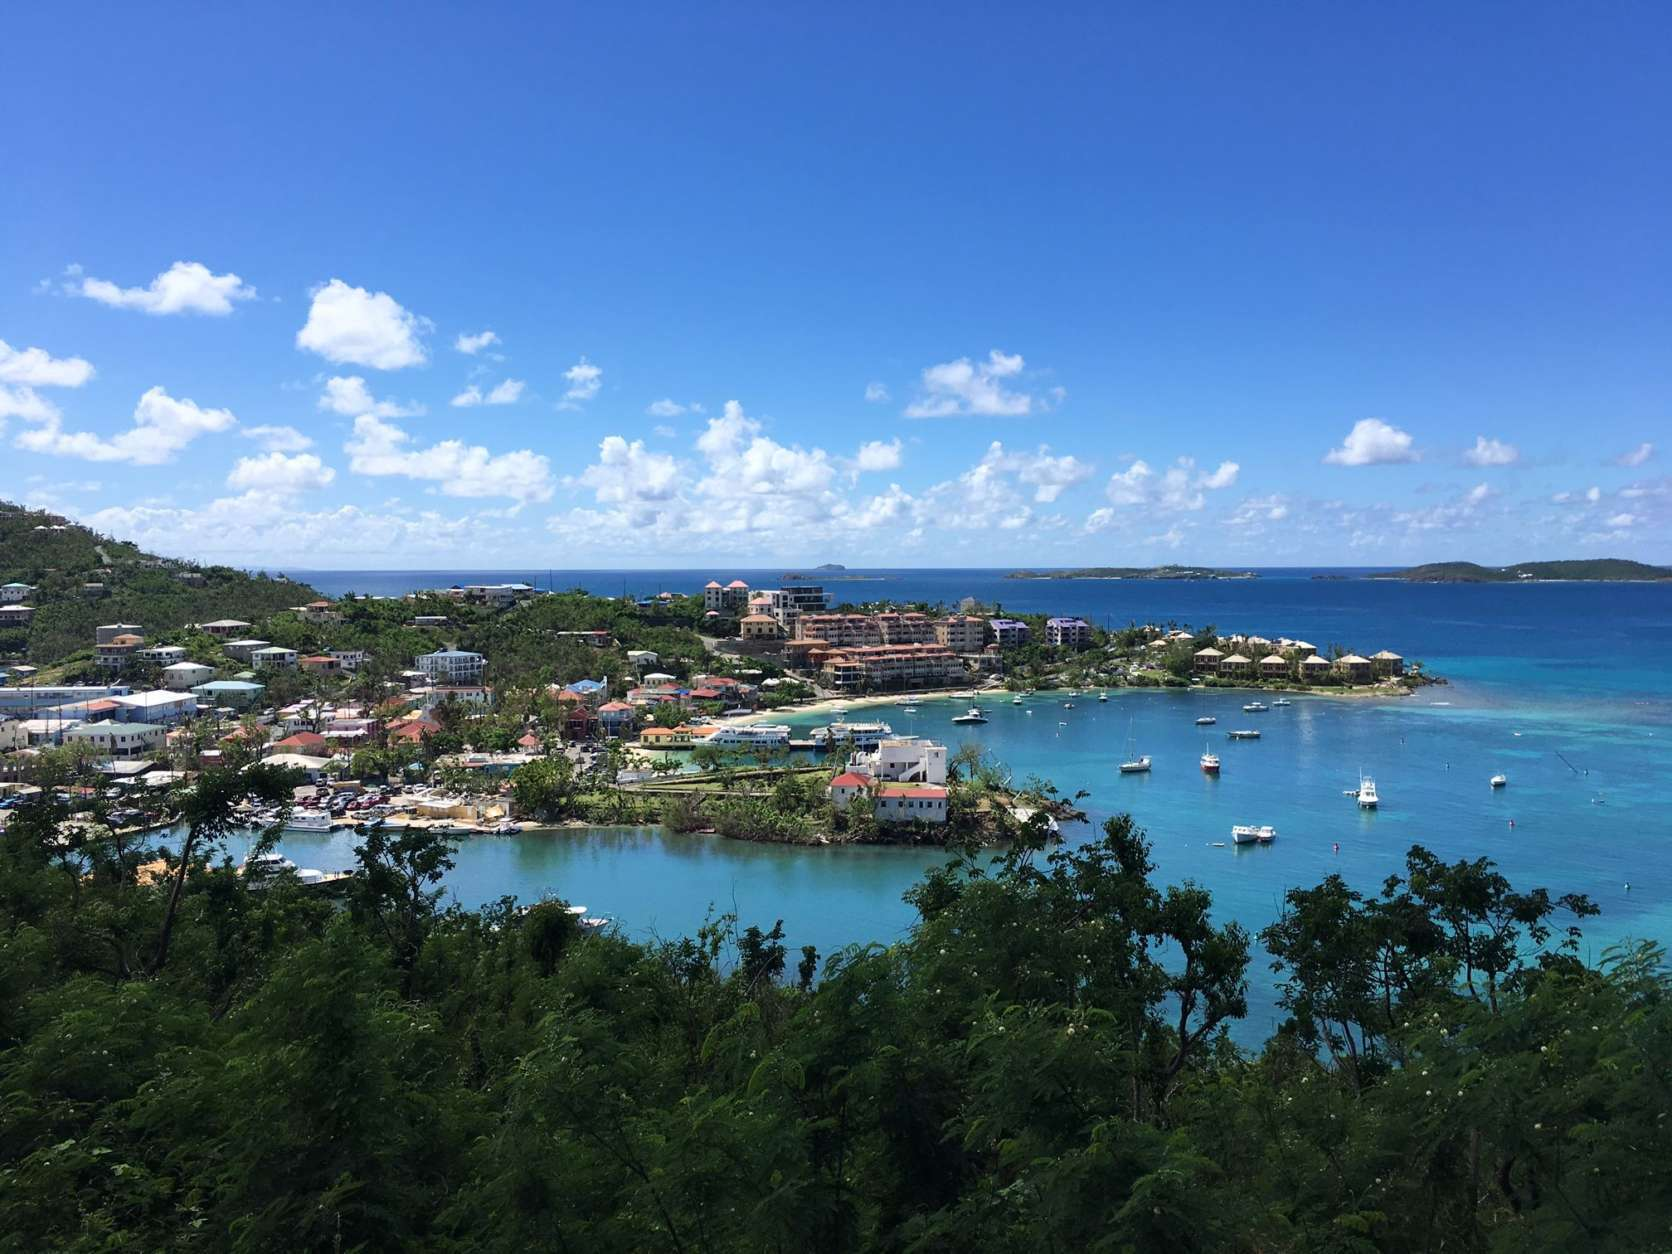 Cruz Bay, St. John. Power was restored to the main town nearly two weeks ago. (WTOP/Jeff Clabaugh)